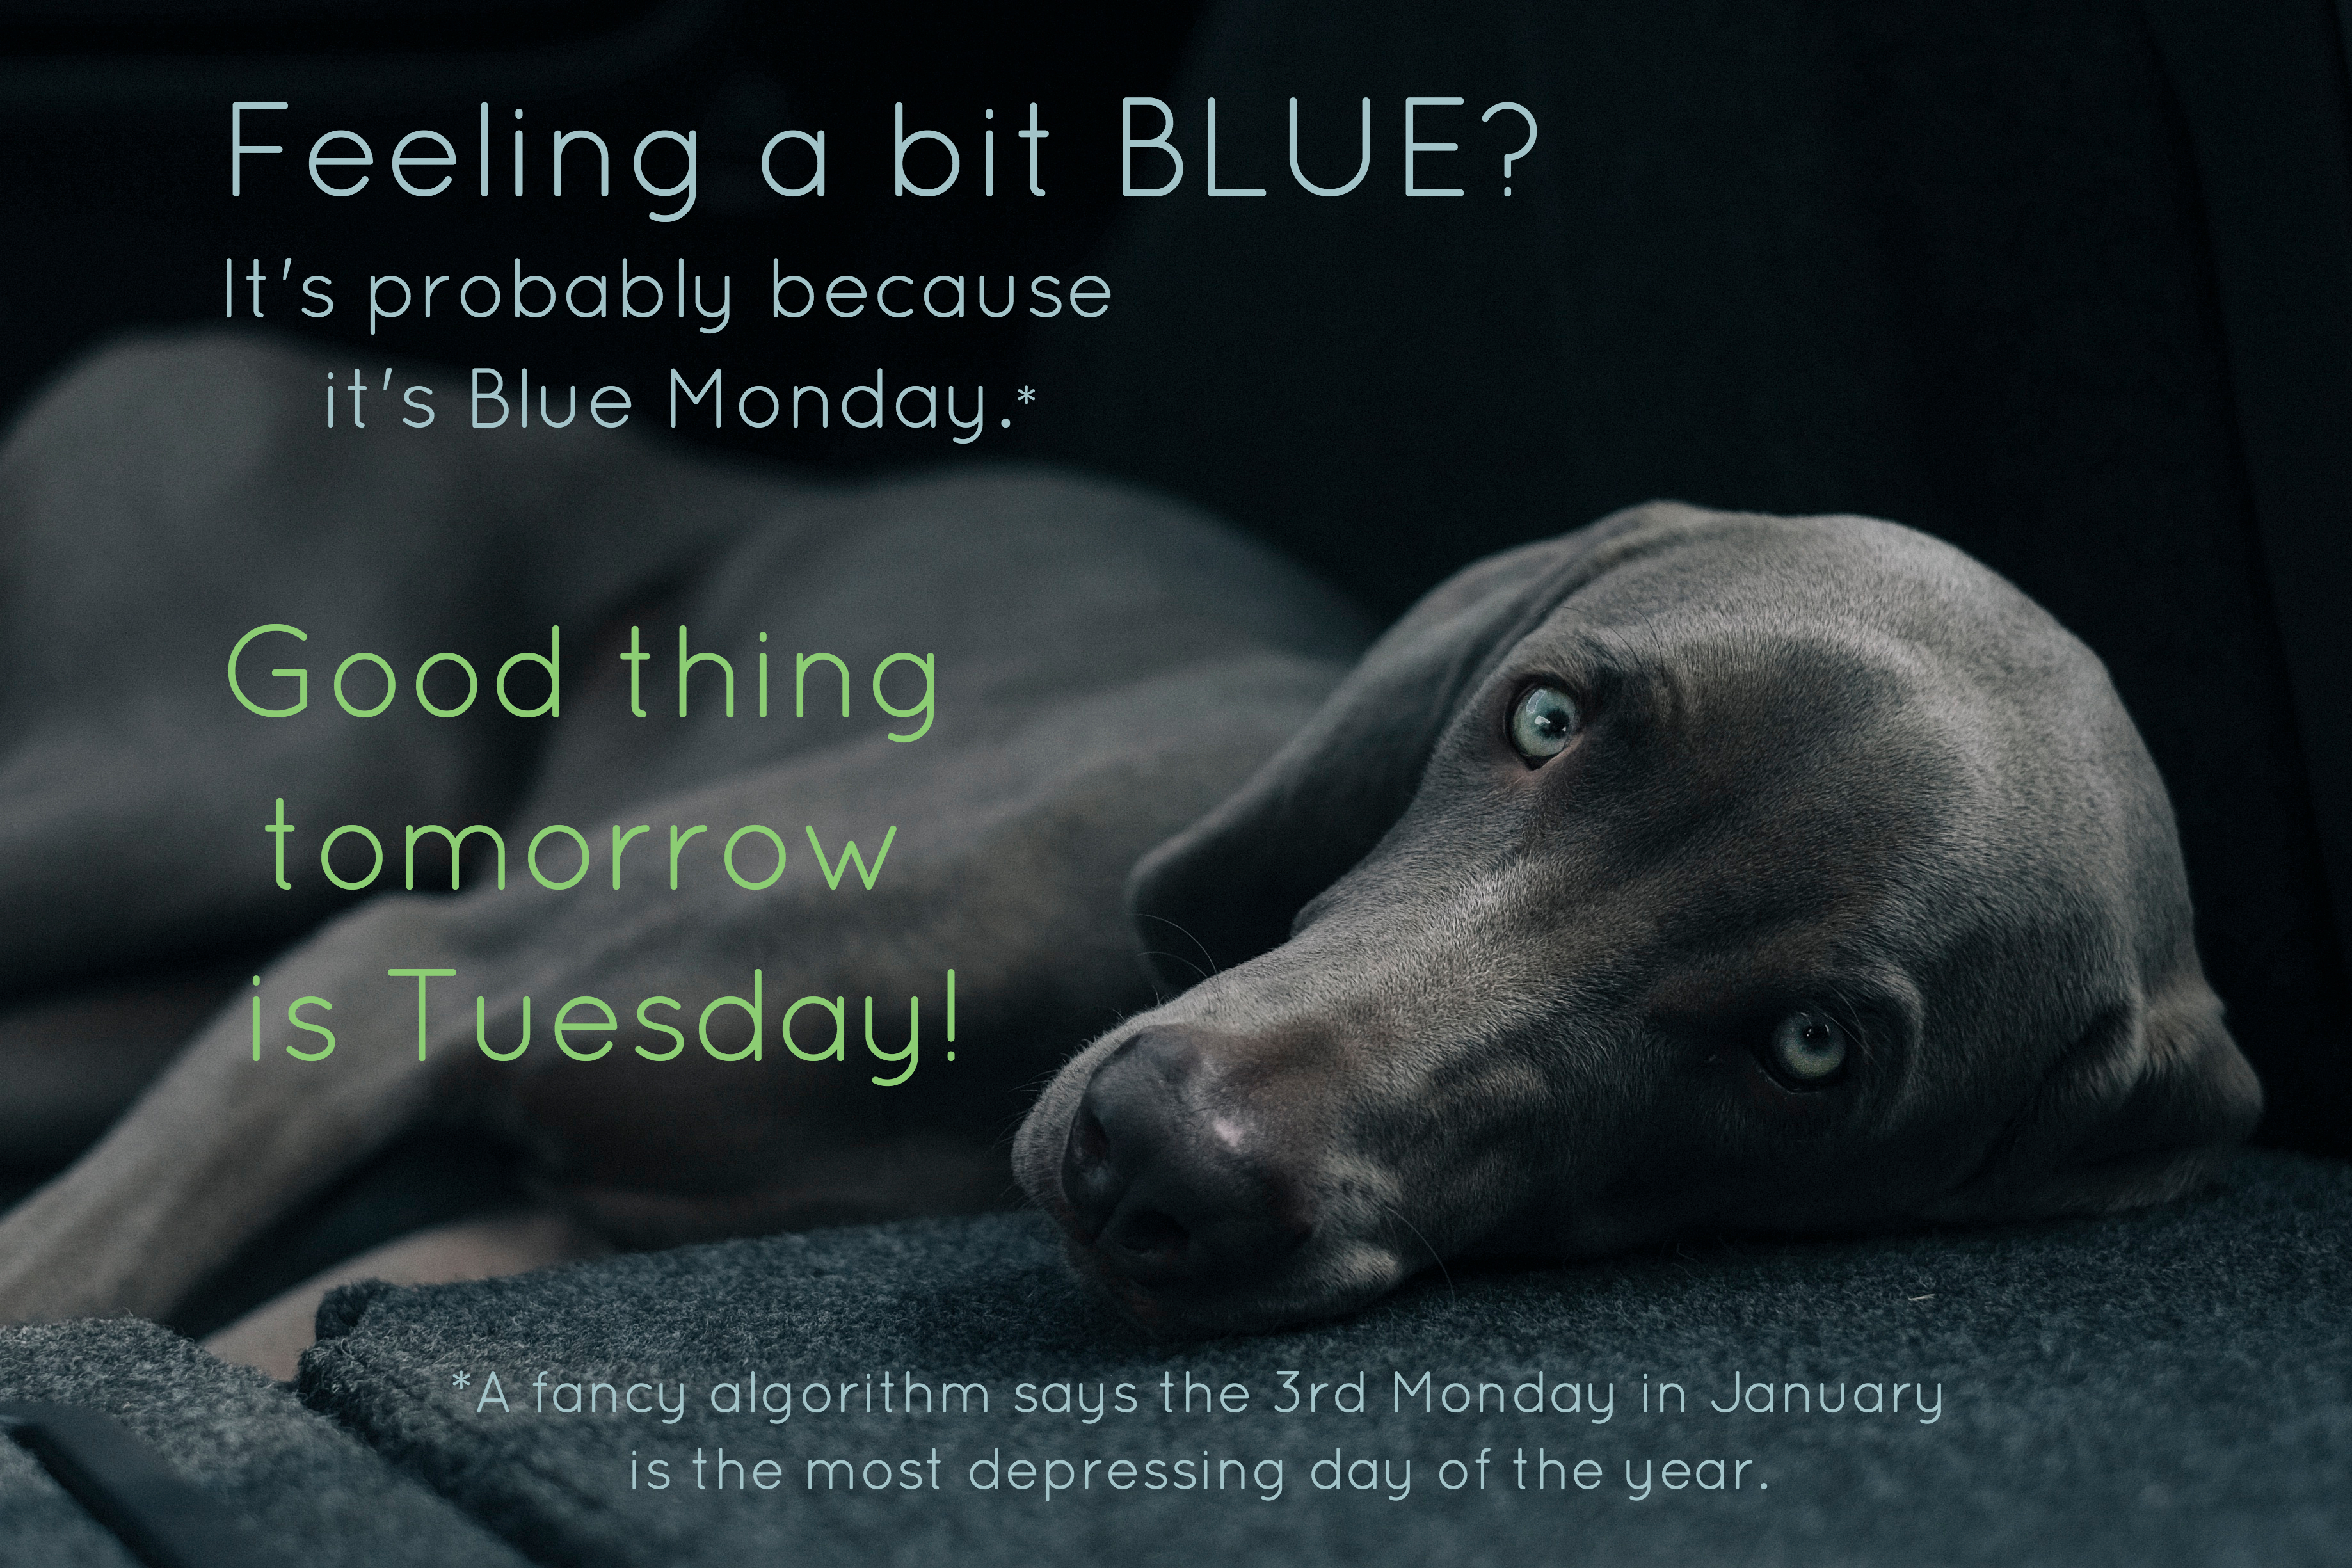 Feeling a bit BLUE? It's probably because it's Blue Monday. (A fancy algorithm says the 3rd Monday in January is the most depressing day of the year.) Good thing tomorrow is Tuesday!